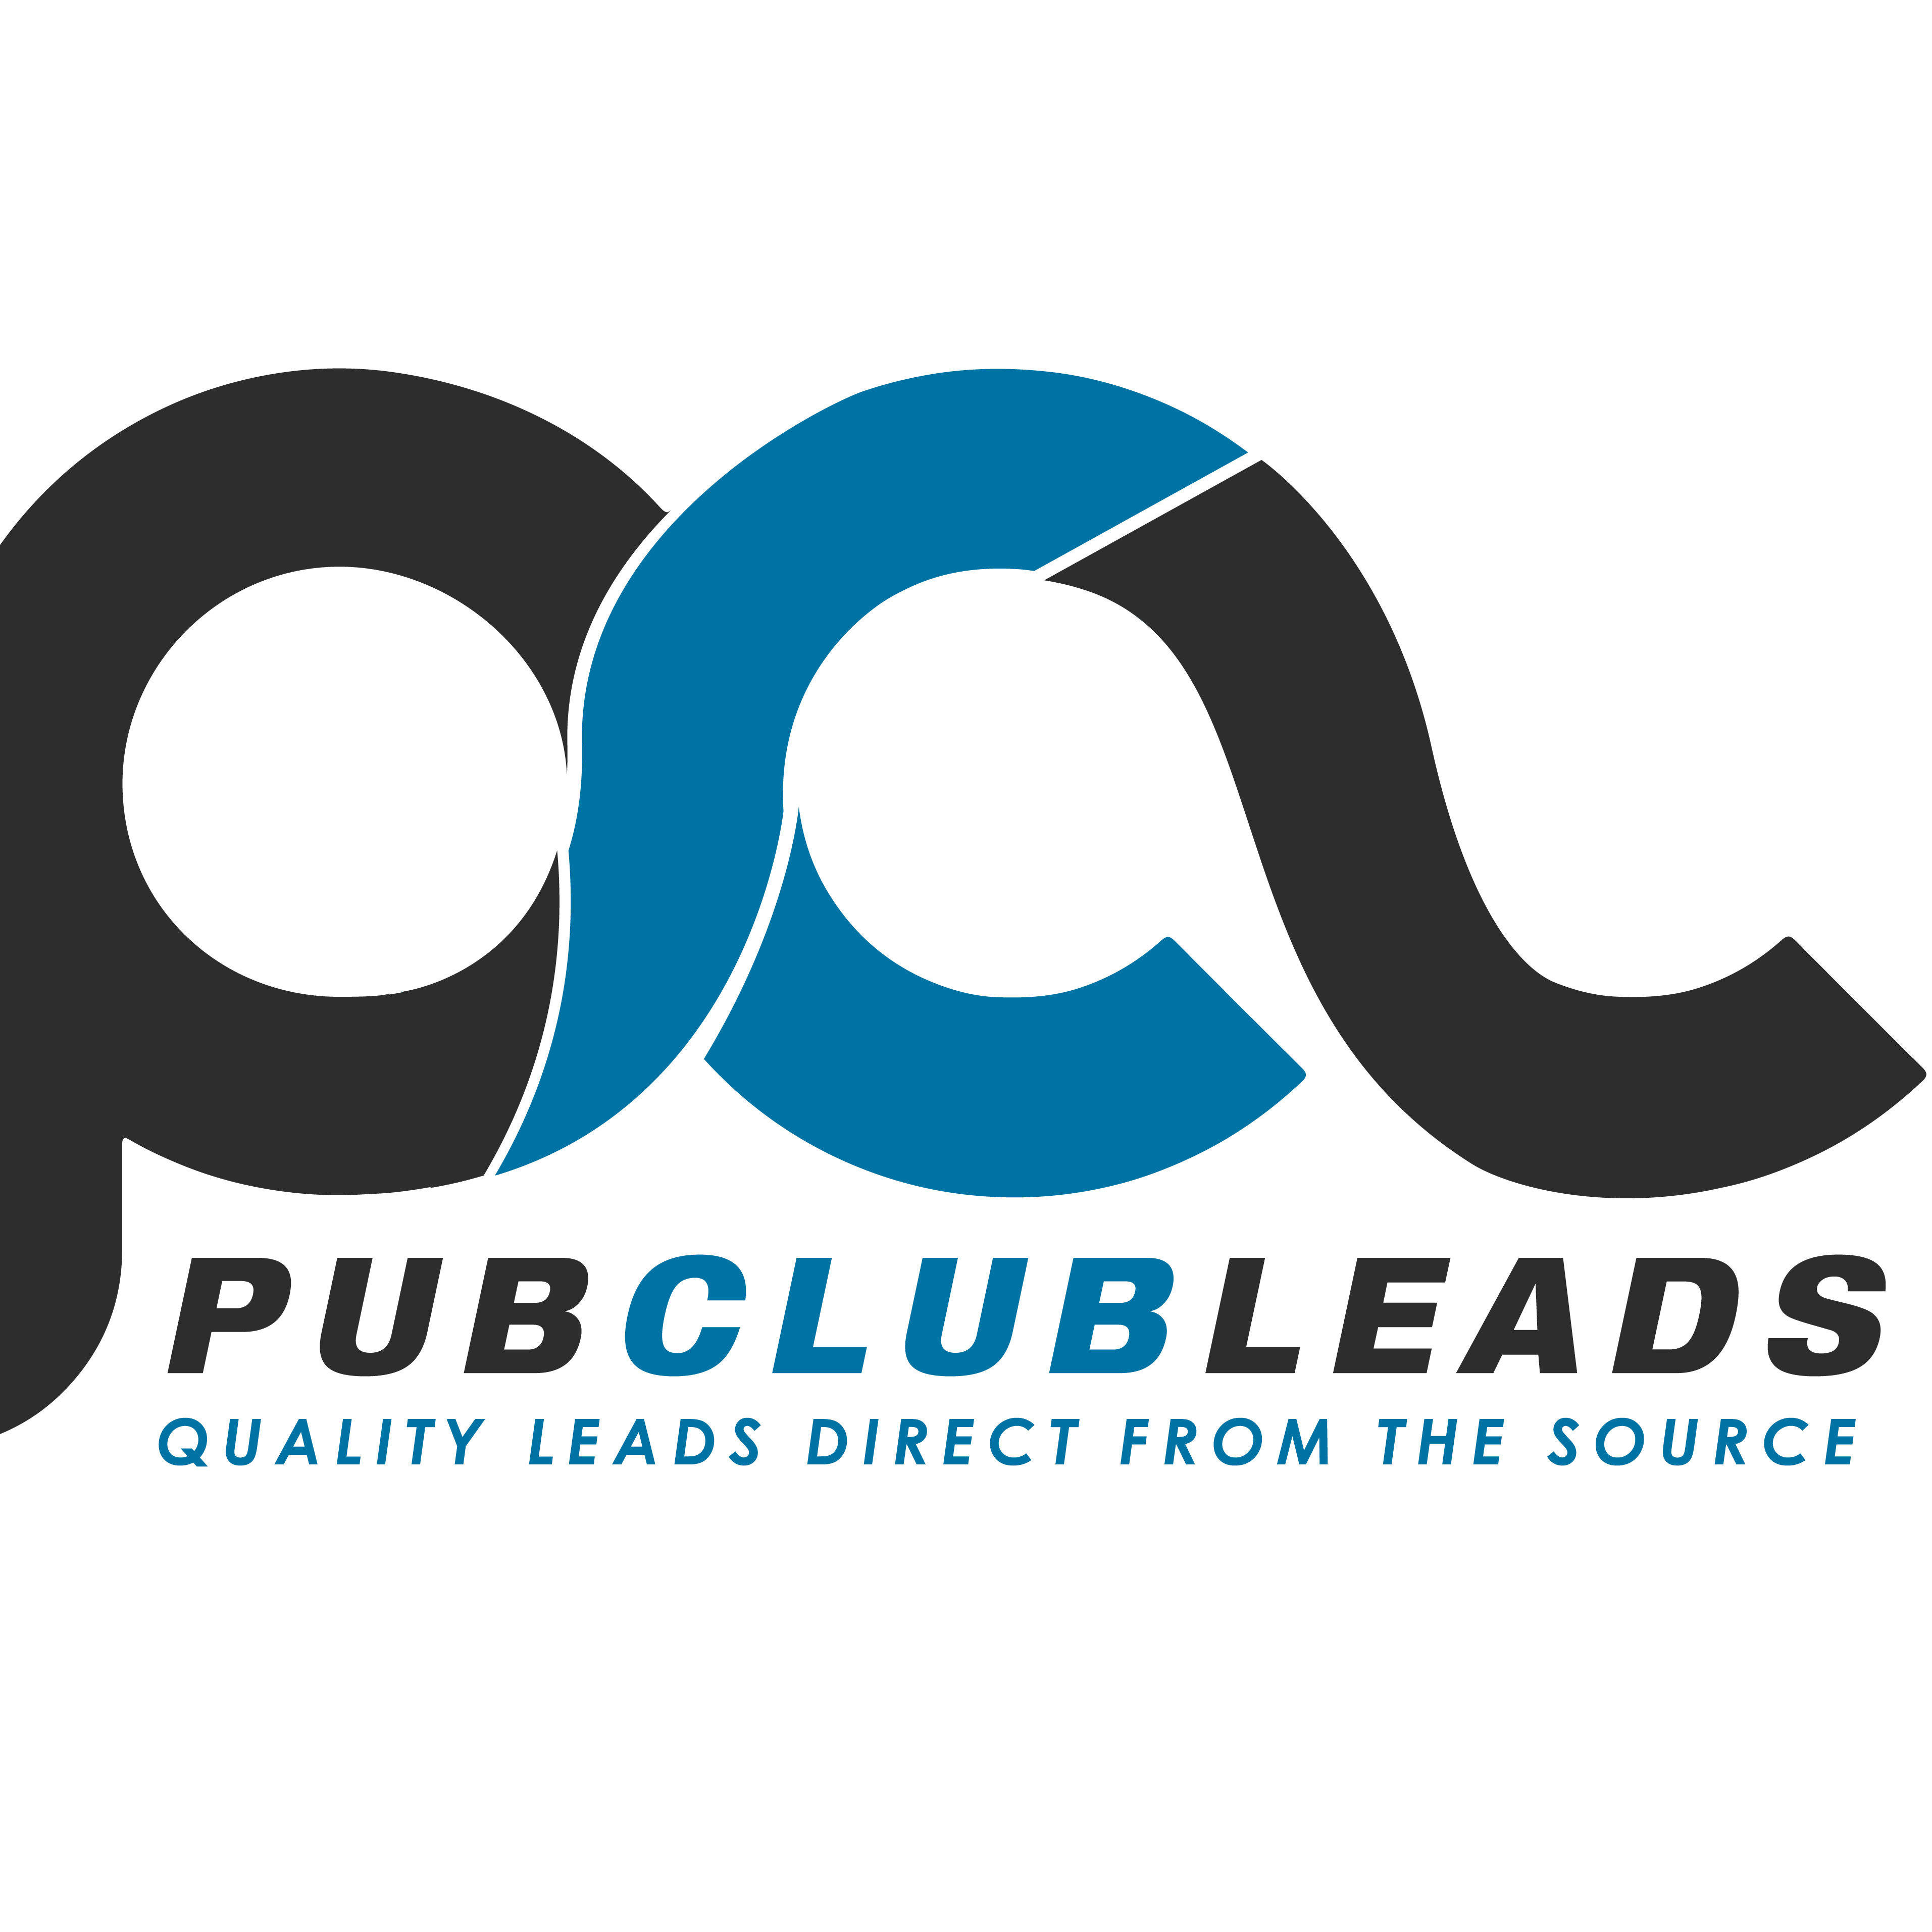 Pub Club Leads